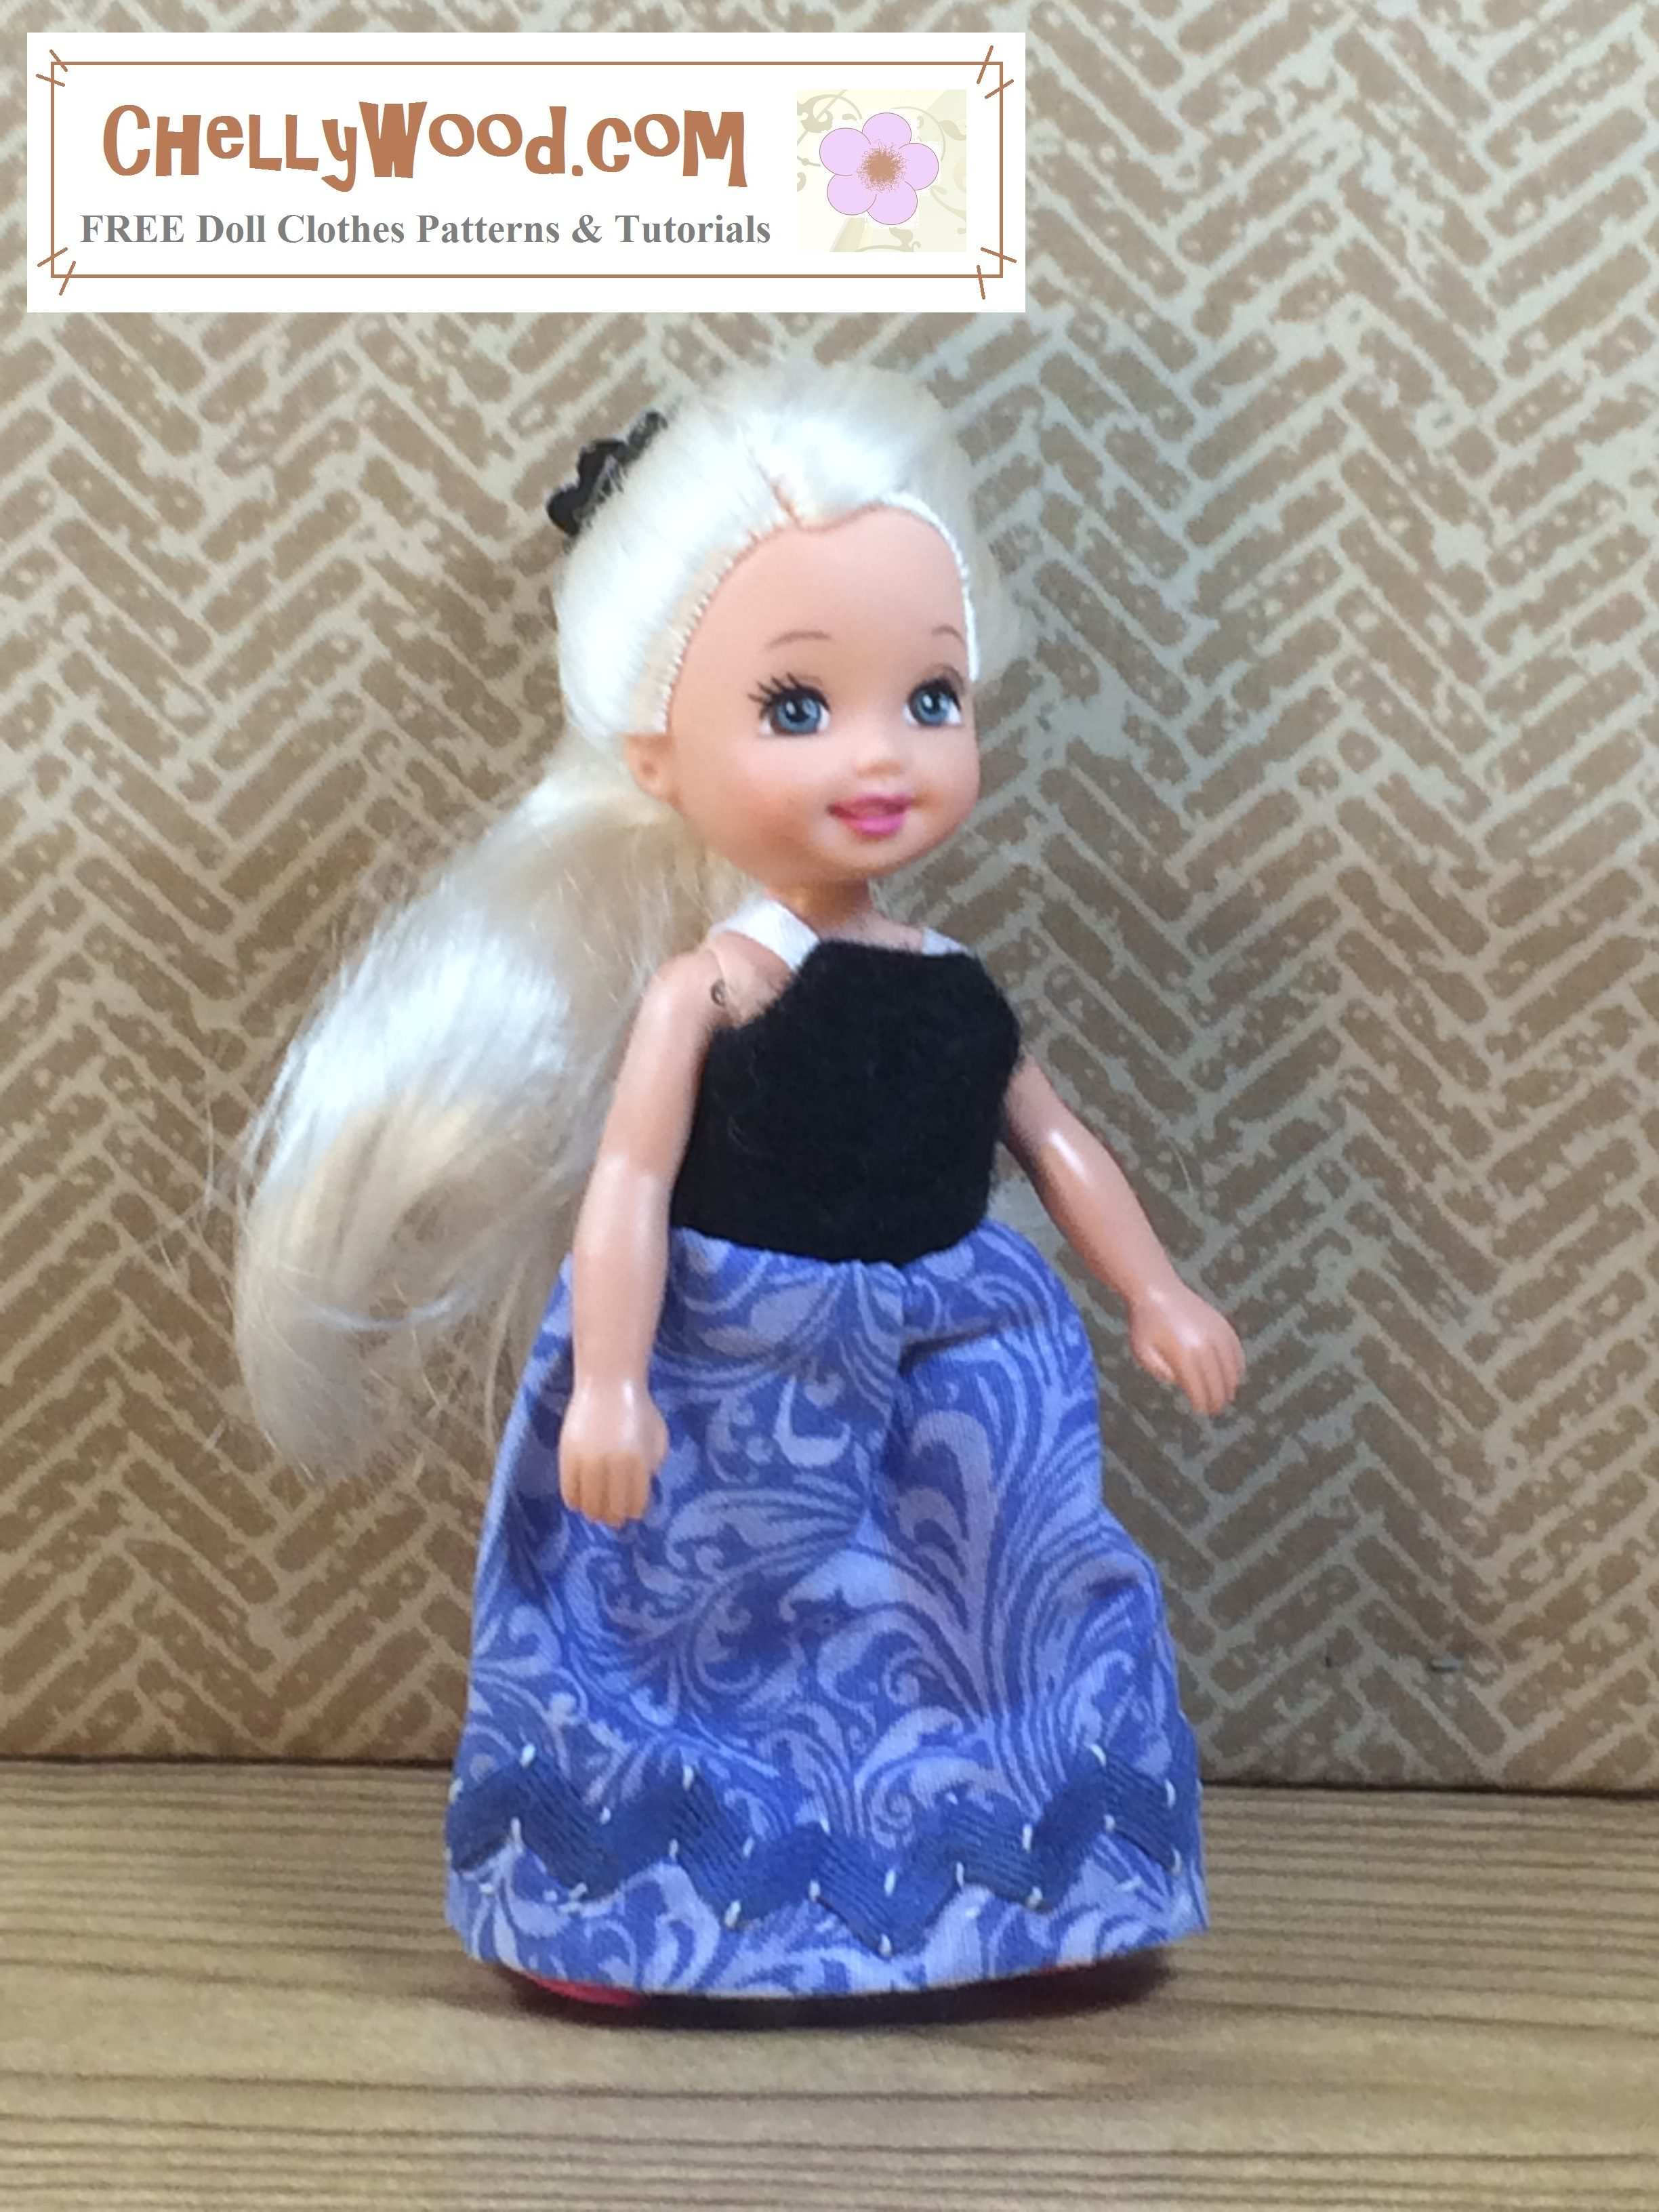 The image shows a Mattel Kelly doll with platinum blond long hair modeling a handmade evening gown. The gown's bodice is a simple sundress style, and it has been made of black felt. The skirt is a deep blue with purple and turquoise swirls. This cotton long skirt is trimmed in deep indigo blue rickrack trim. The dress has white 1/8 inch satin ribbon straps.